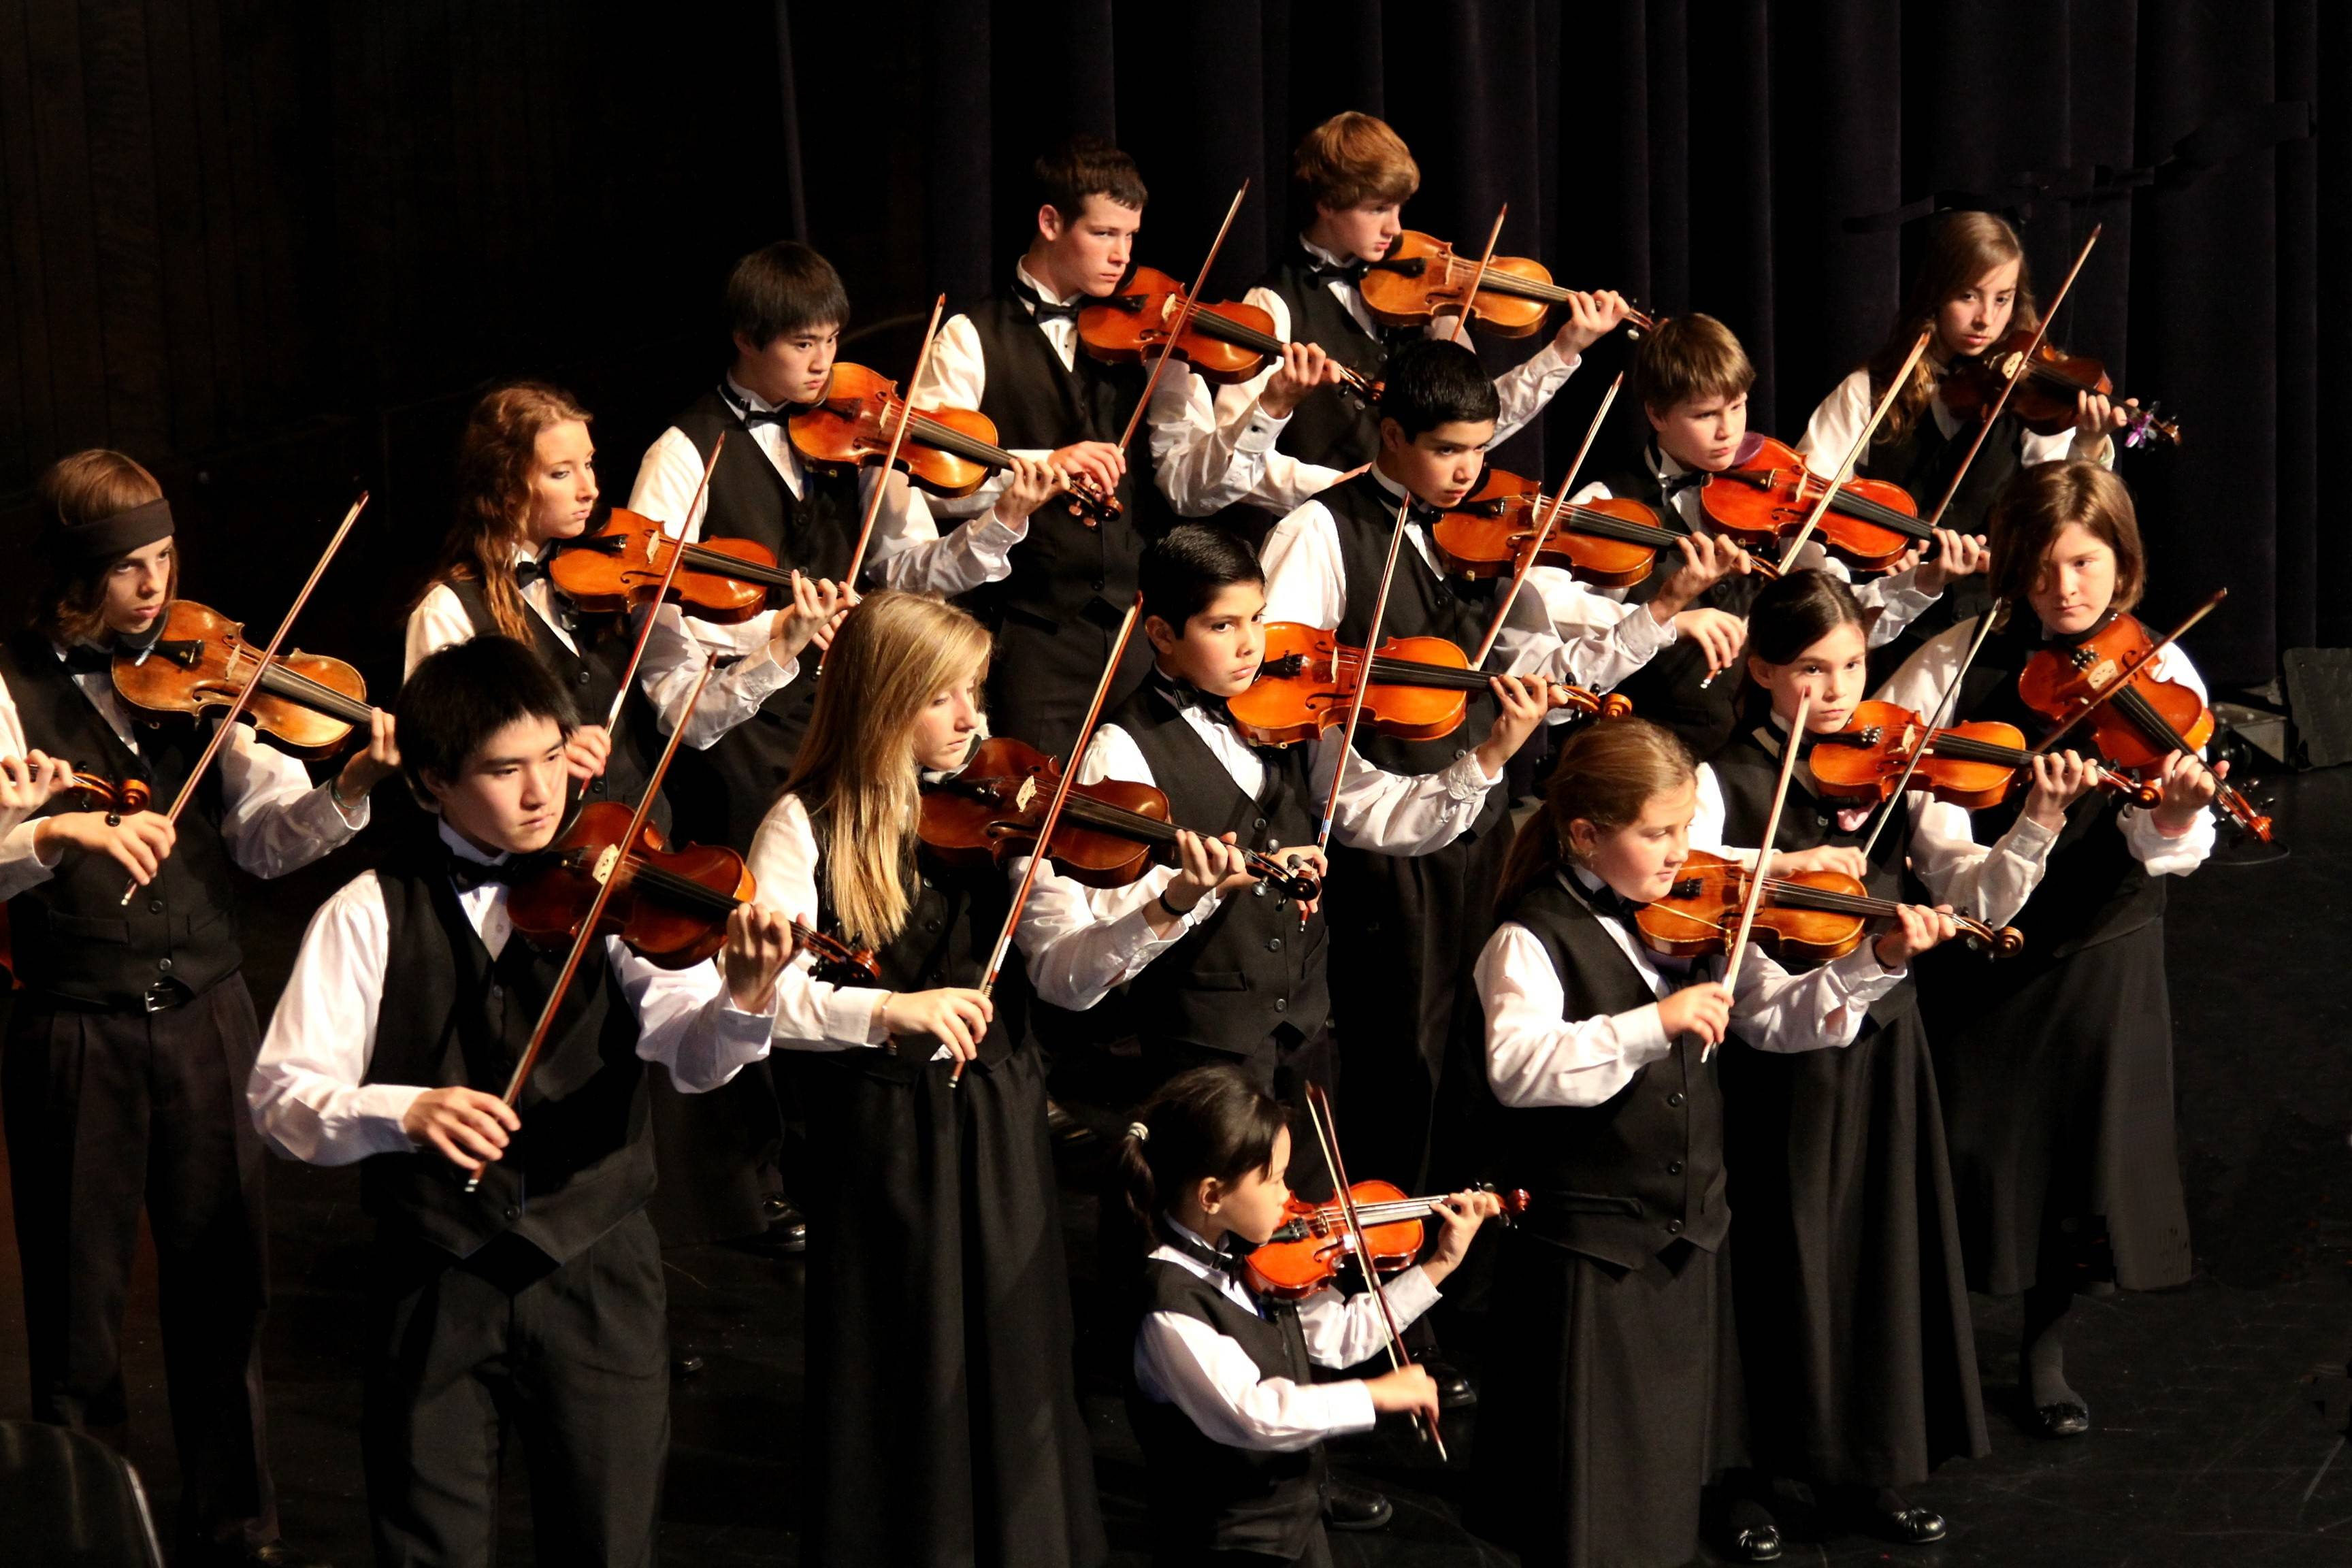 Children ages 4-18 can learn to play an instrument with the Suzuki Method. See young performers this Sunday, when the Suzuki School of Elgin holds its spring concert on the campus of Judson University.